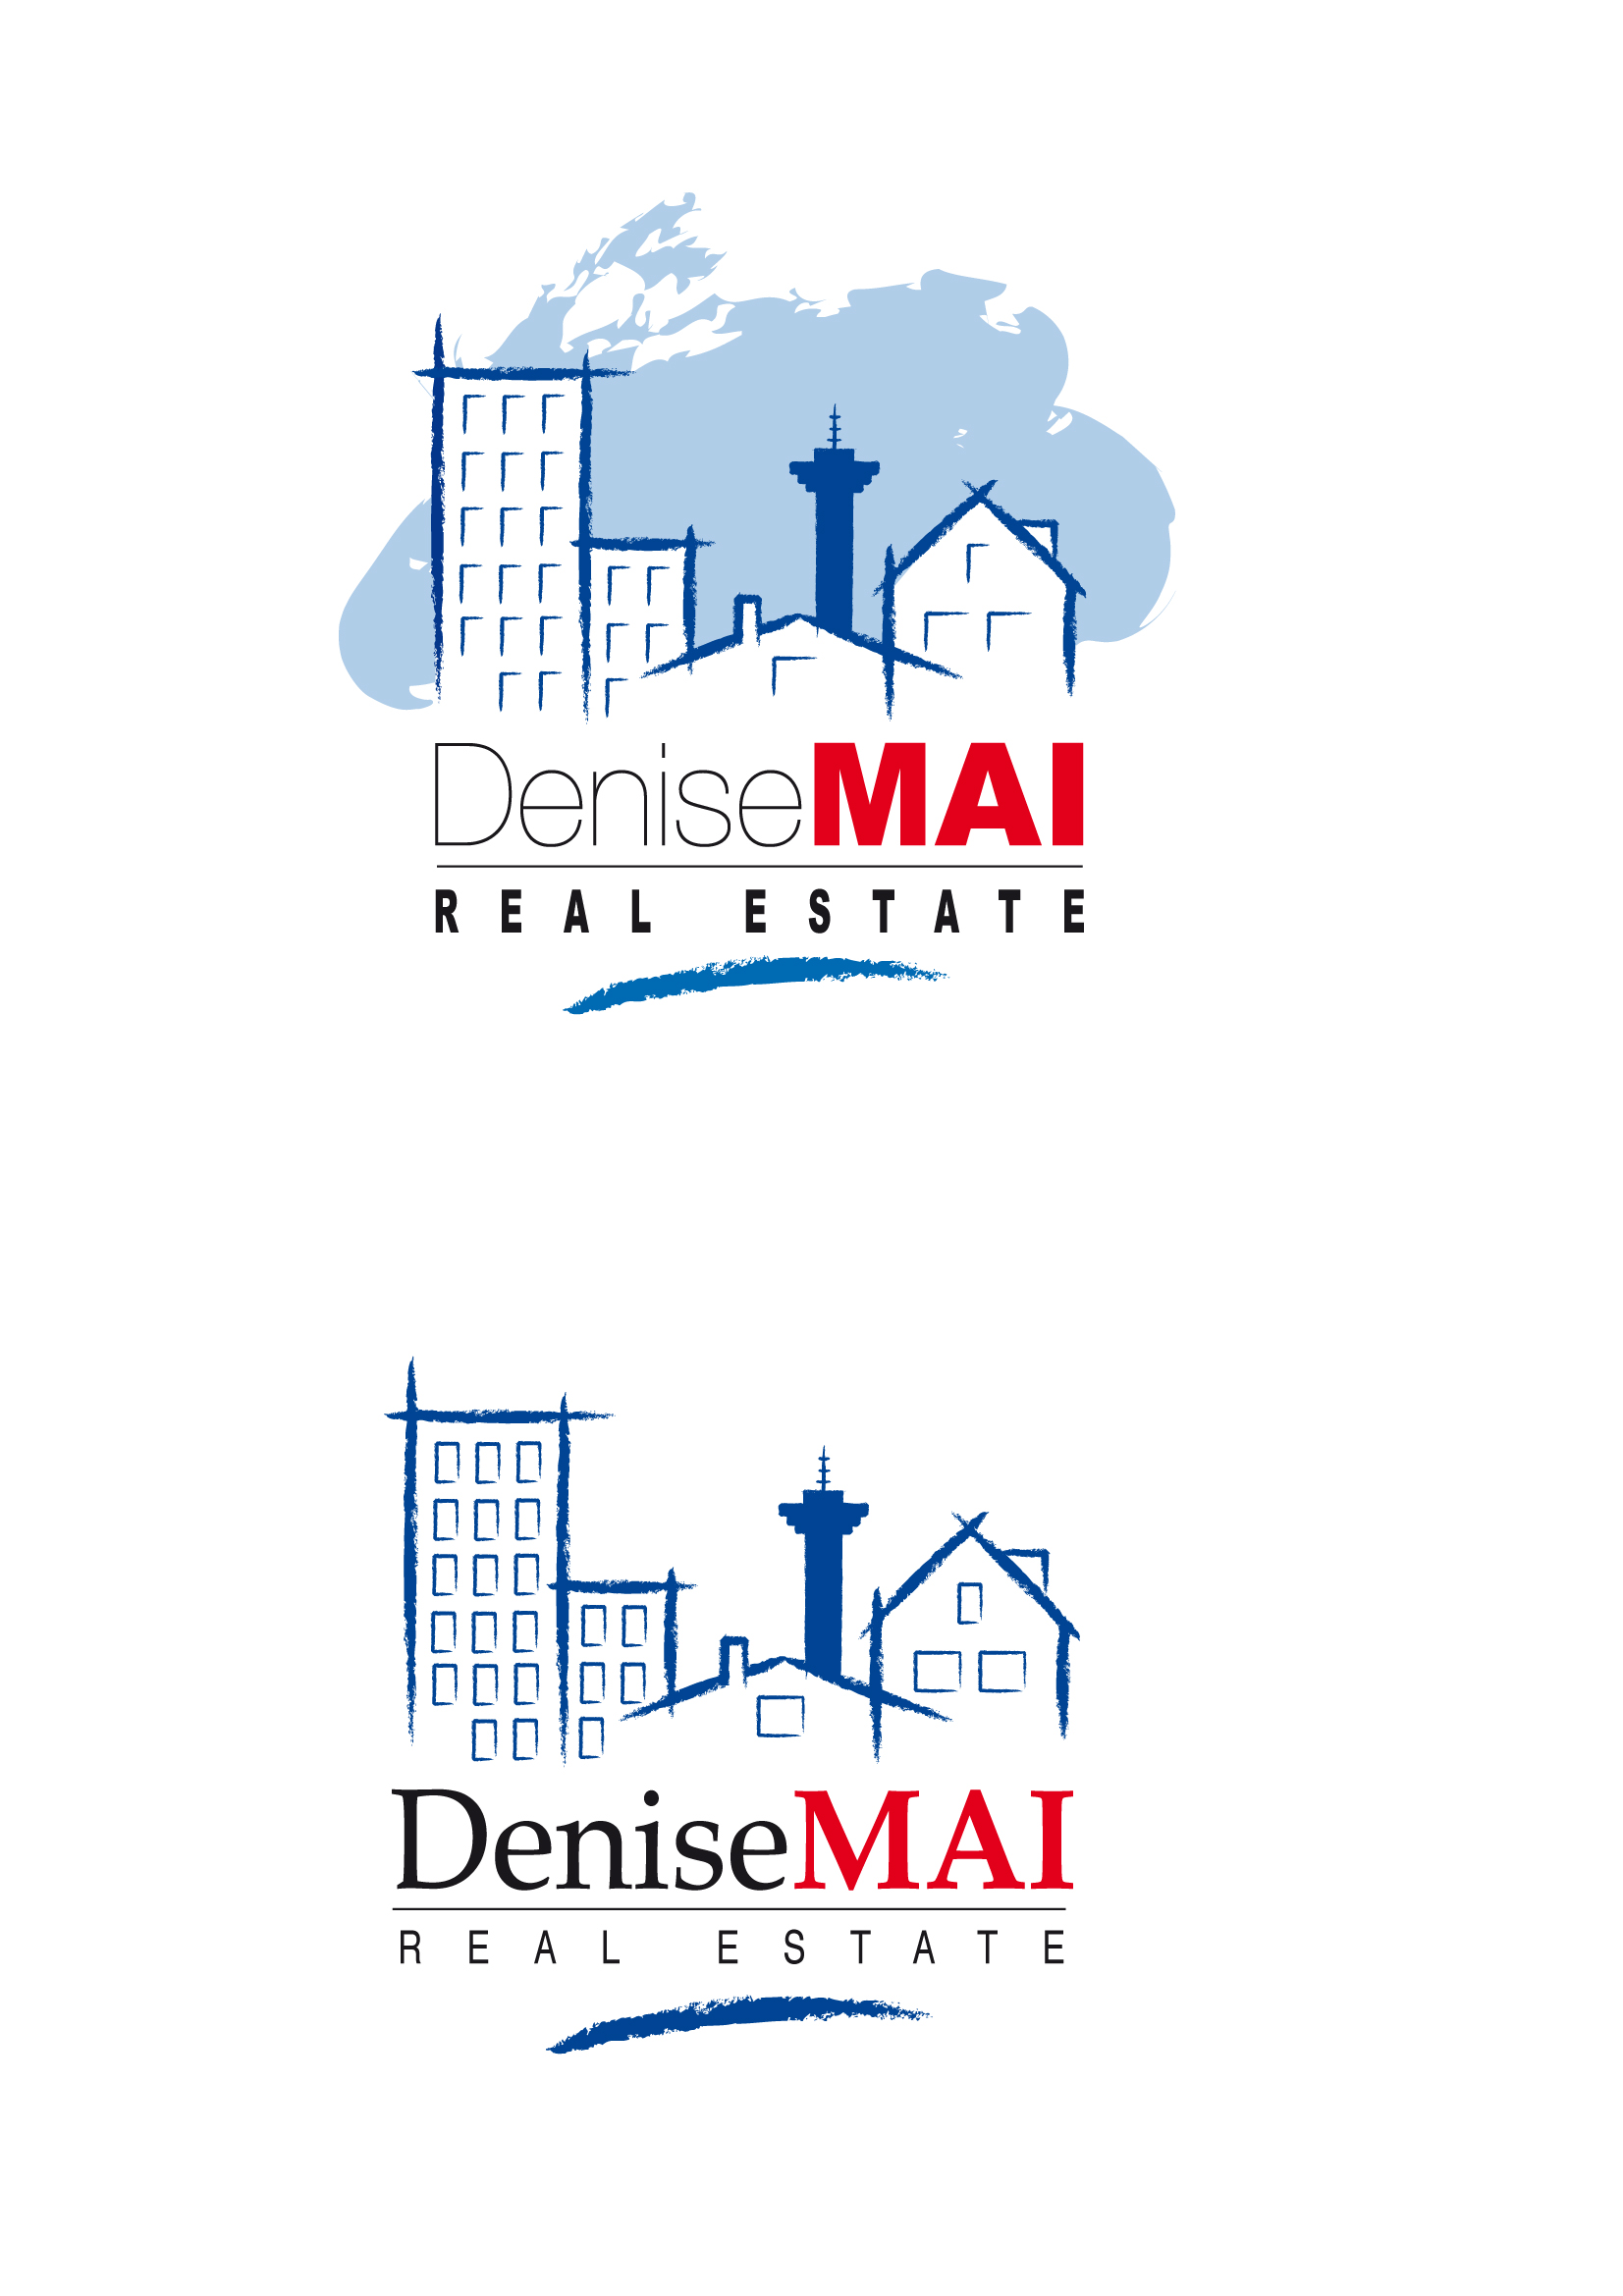 Logo Design by Alain Joannis - Entry No. 33 in the Logo Design Contest Unique Logo Design Wanted for Re/Max realtor!.